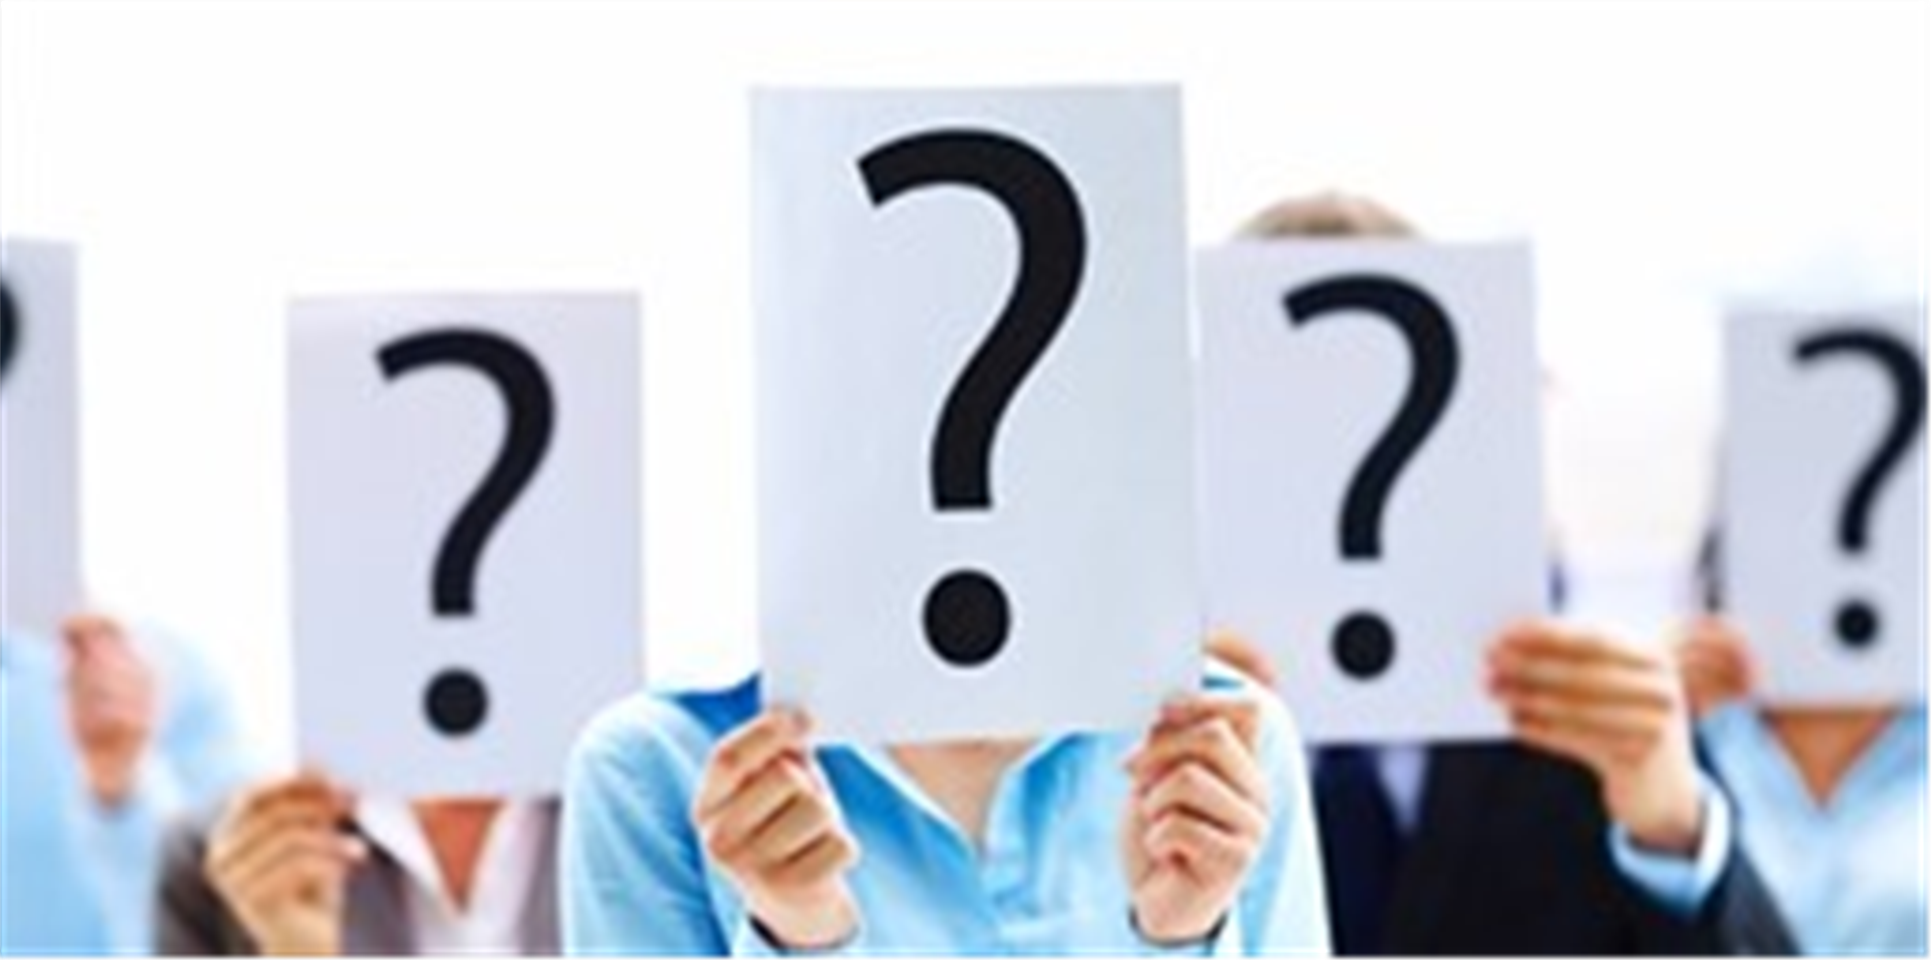 Stock photo of people holding up questions marks